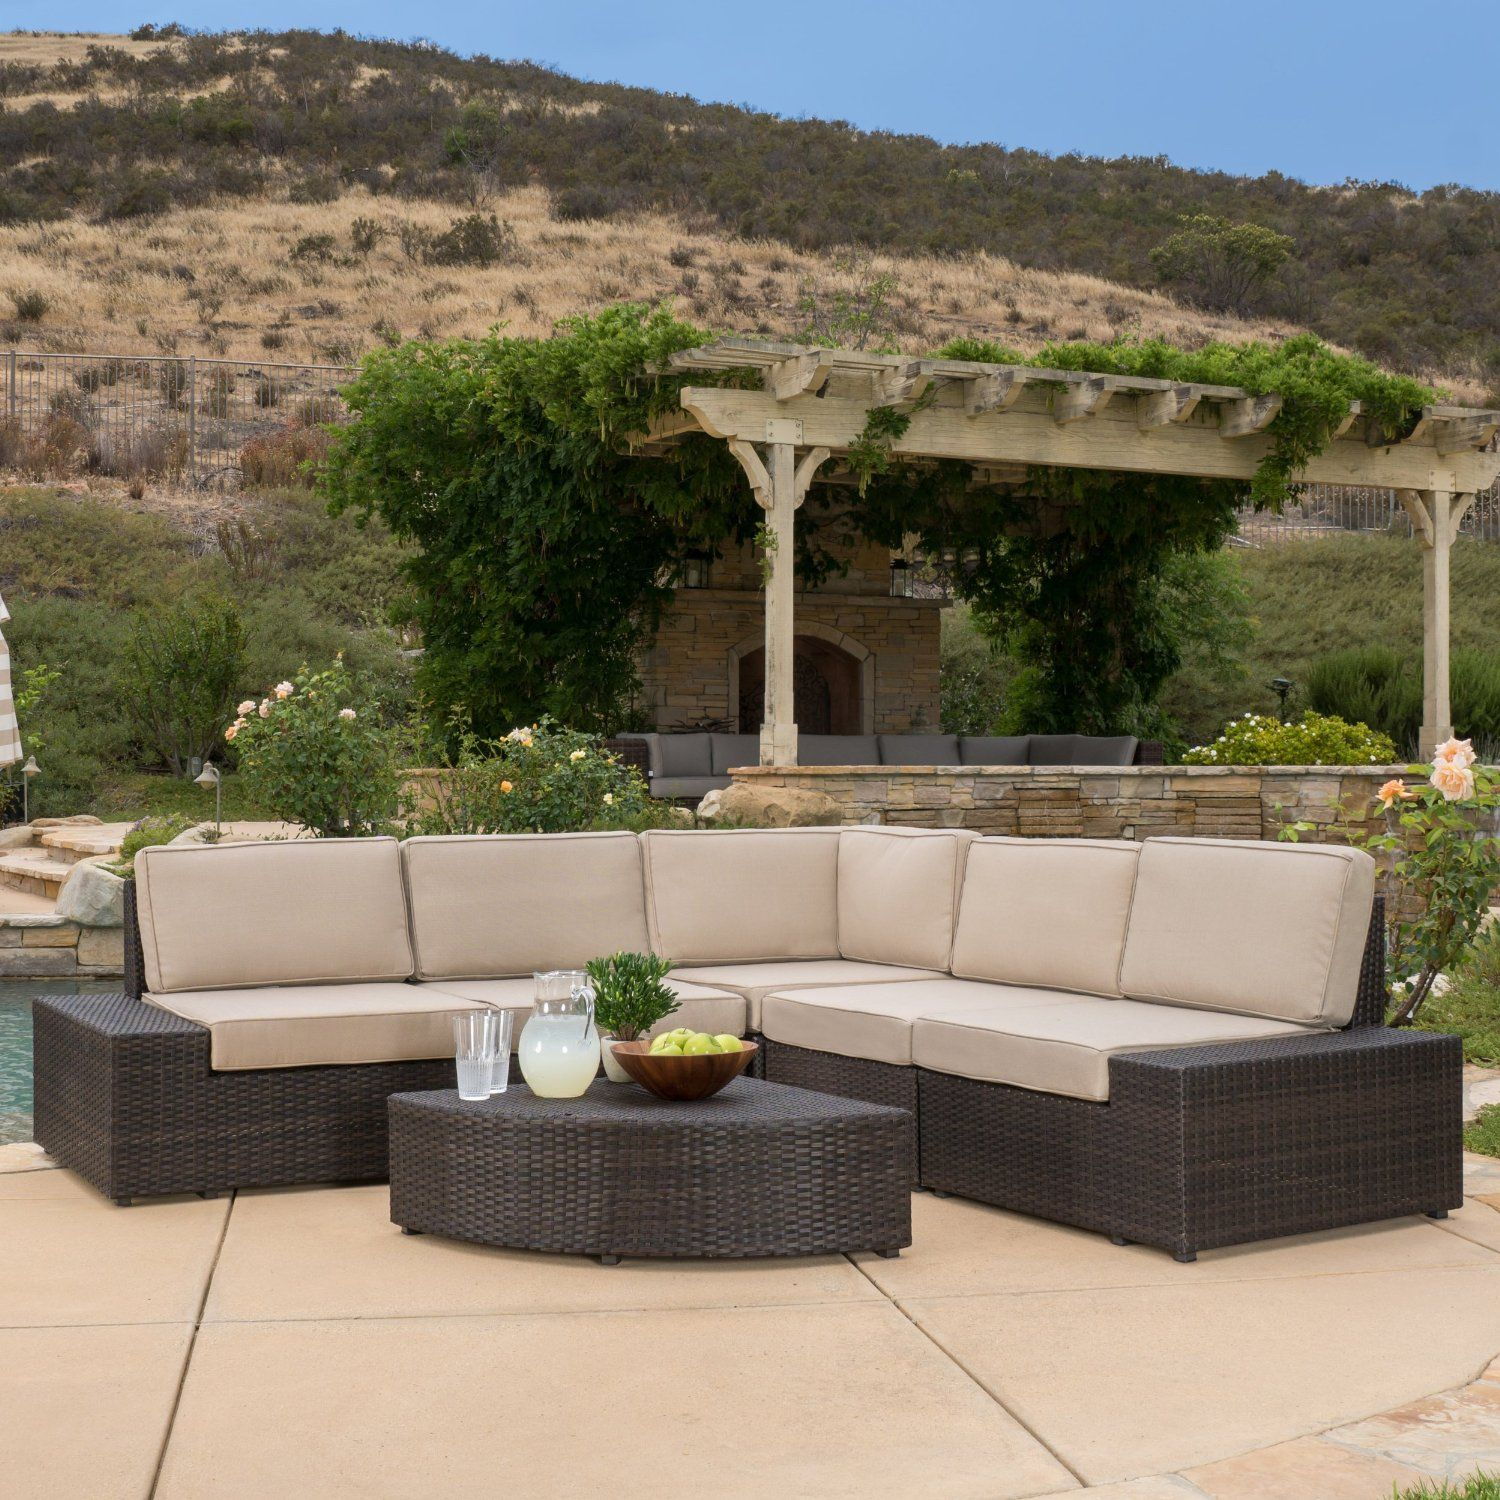 reddington outdoor brown wicker sectional. Black Bedroom Furniture Sets. Home Design Ideas